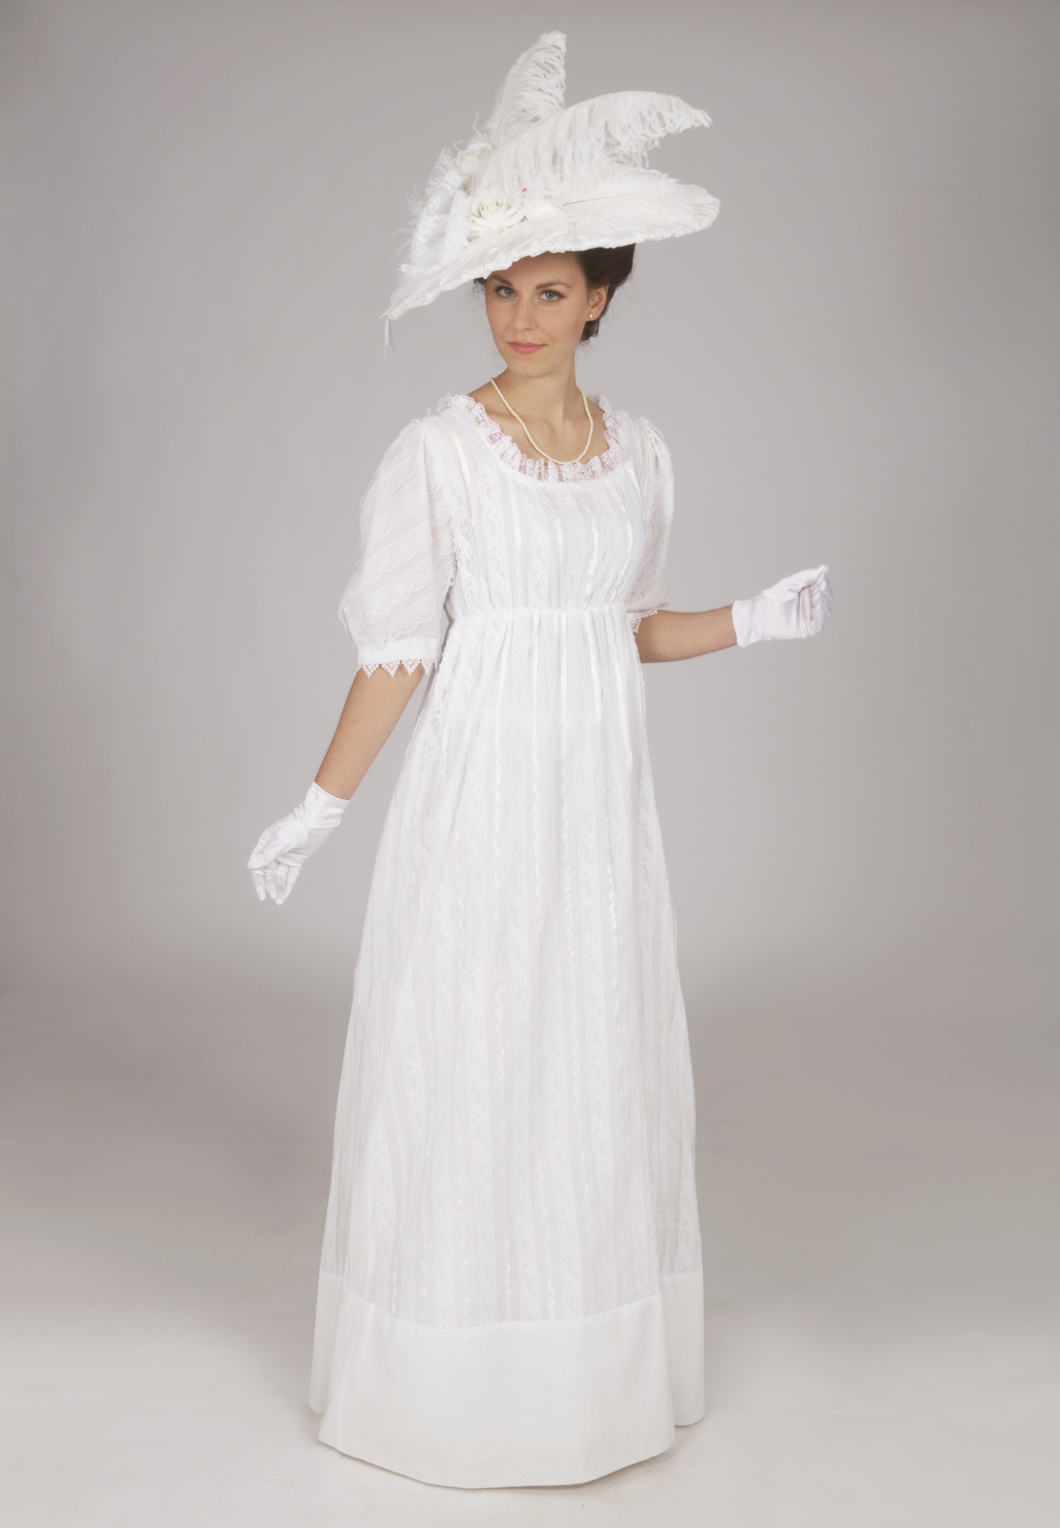 Downton Abbey Fashions from Recollections (Page 1 of 4)